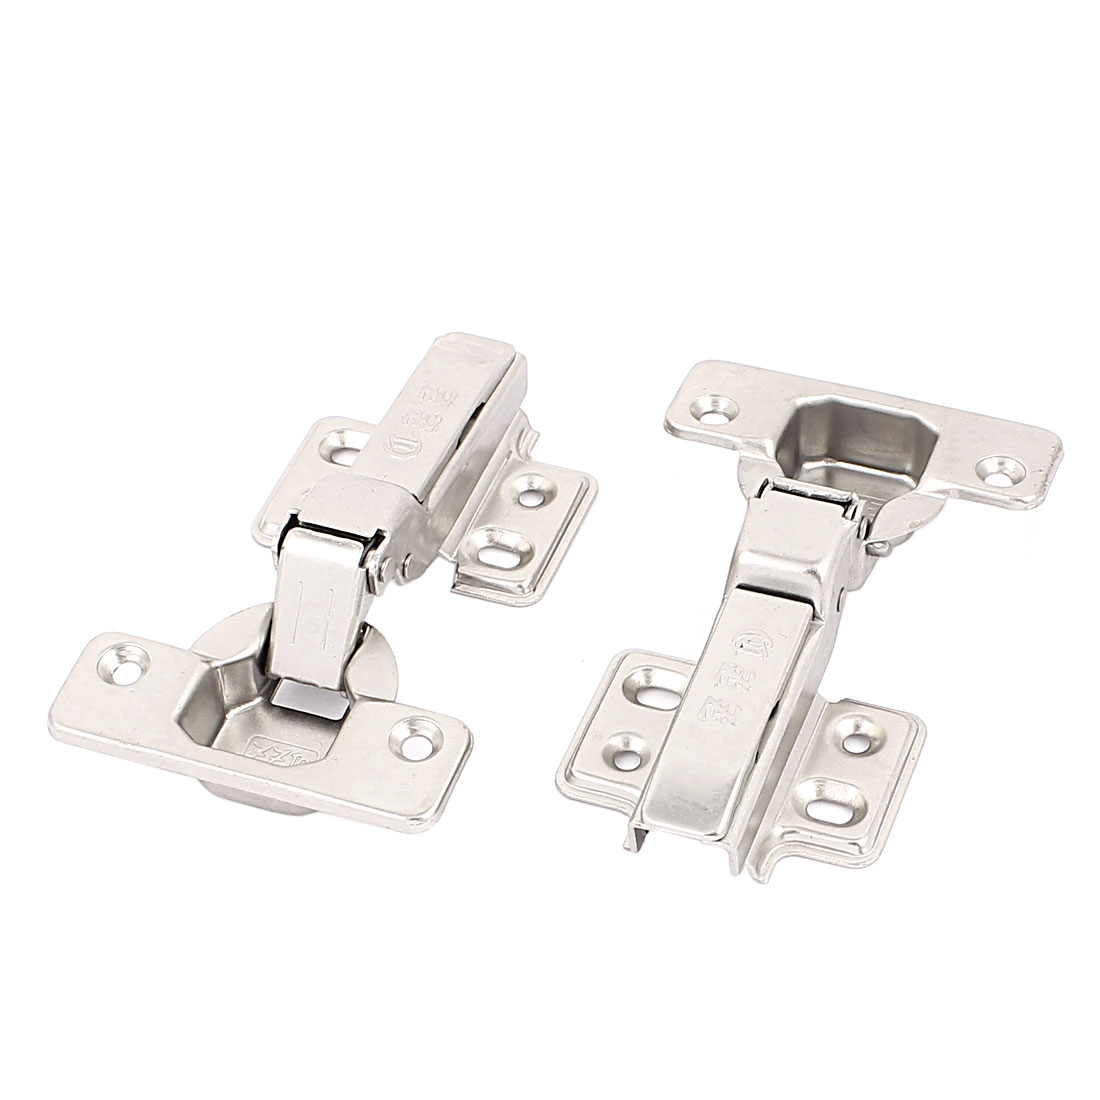 Kitchen Door Cabinet Self Closing Half Overlay Concealed Hinges Hardware 2 Pcs